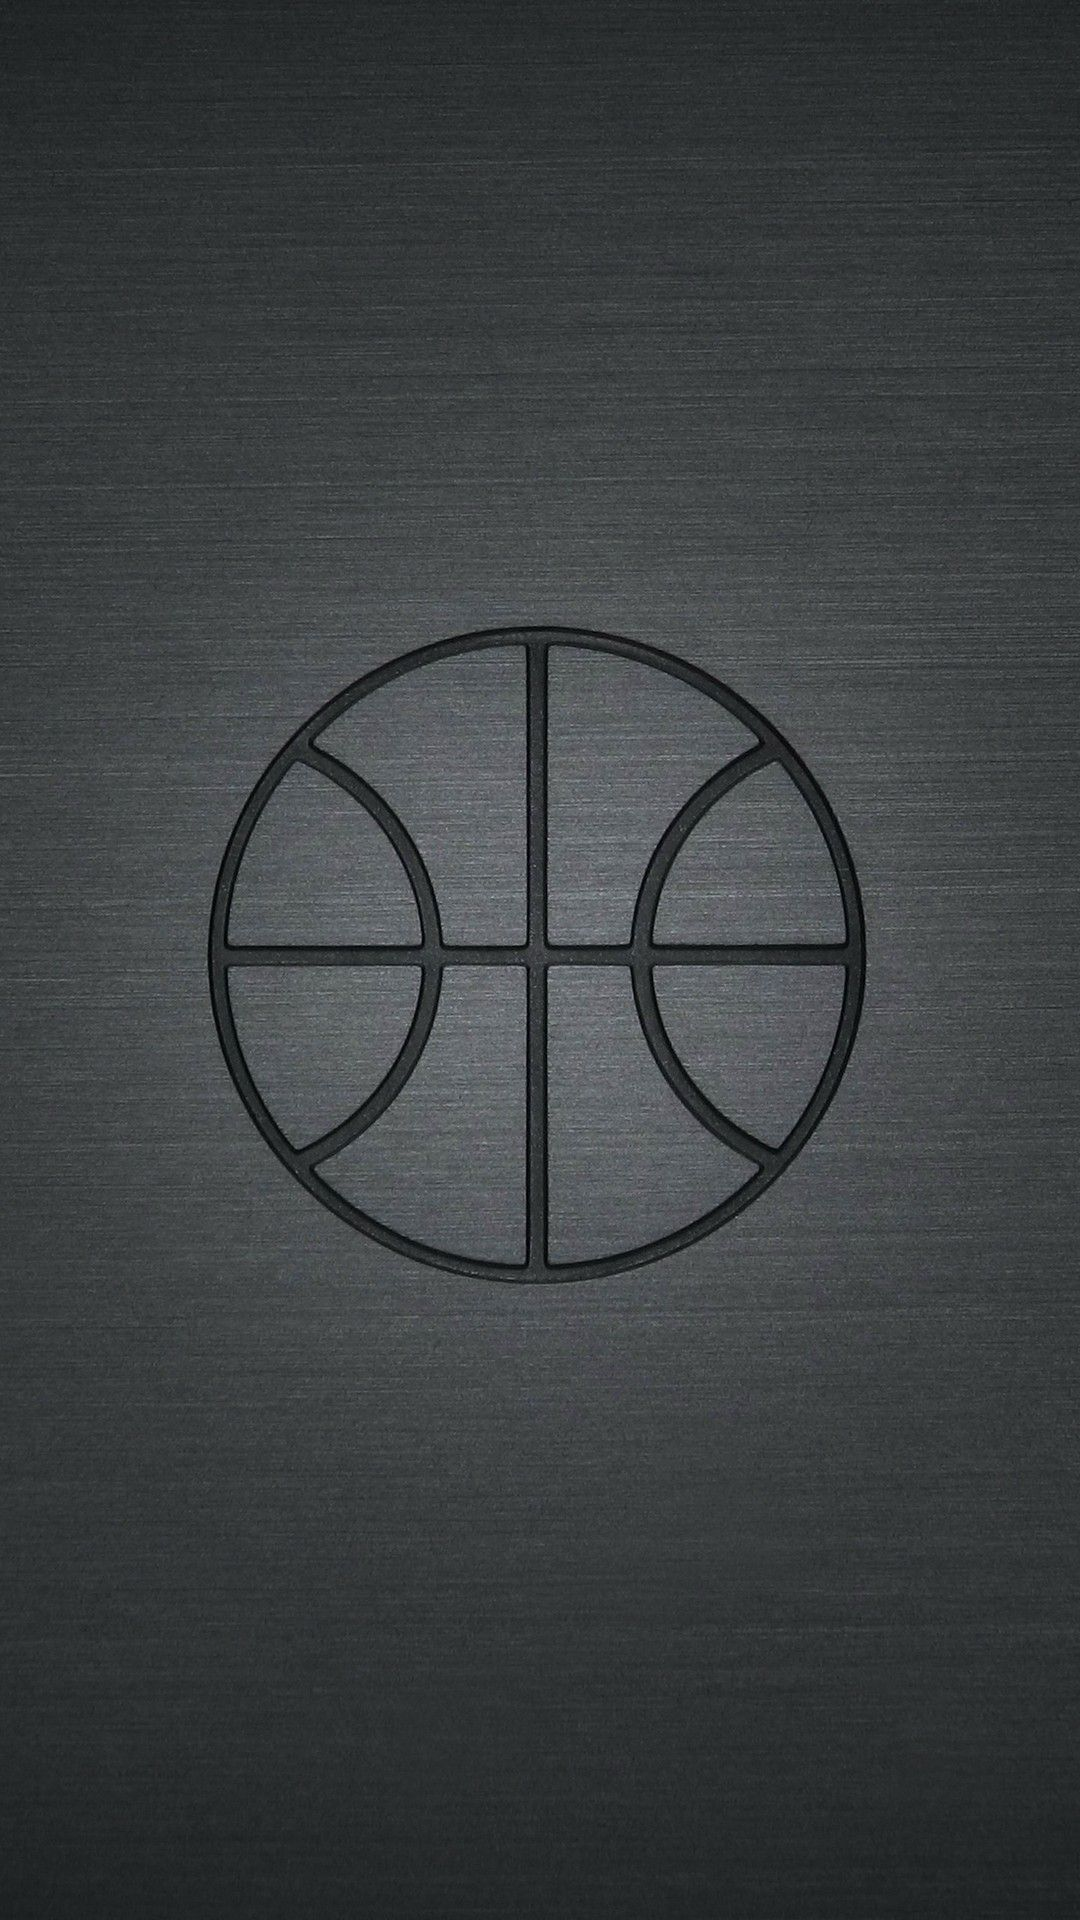 Nba Basketball Iphone 7 Wallpaper 2019 Basketball Wallpaper What Is The Best Season For Doi In 2020 Basketball Iphone Wallpaper Nba Wallpapers Basketball Wallpaper